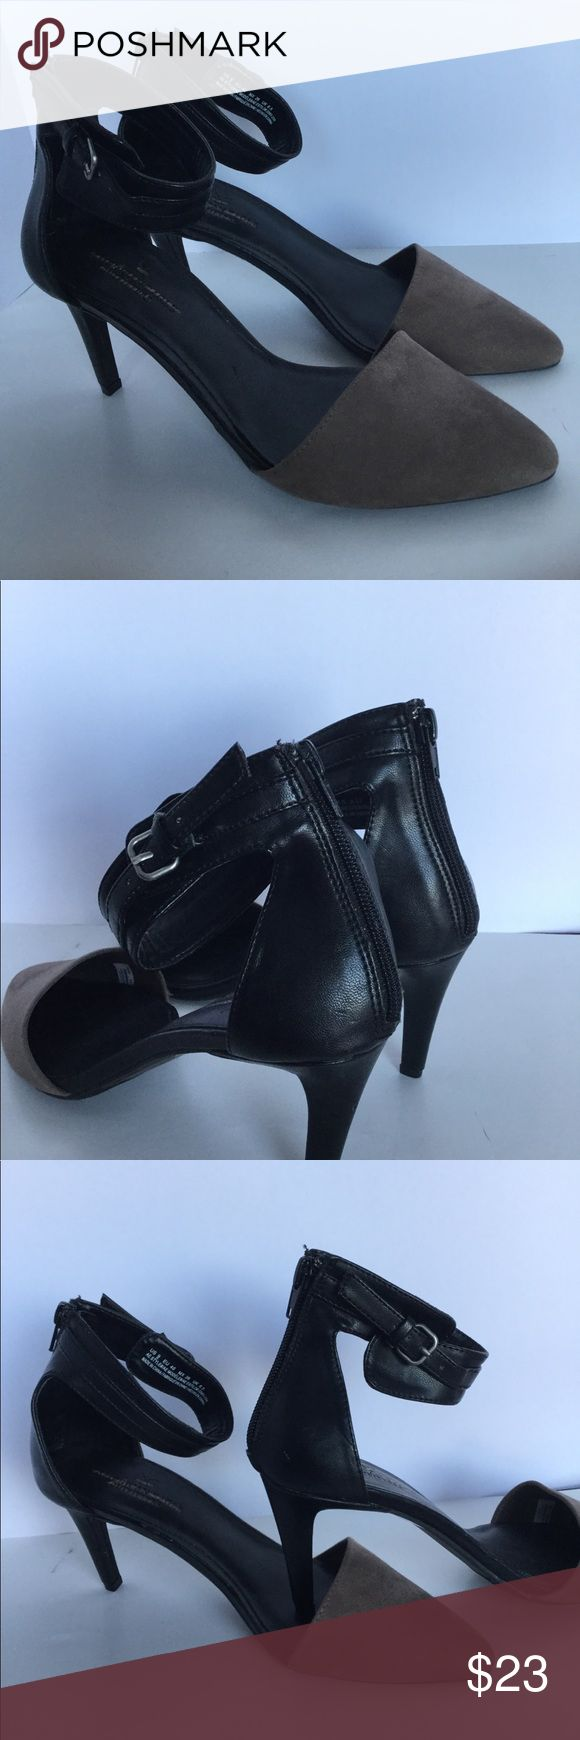 """NWOT American Eagle size 9 suede-leather heels NEW without tags American Eagle Outfitters  Size 9 Gorgeous leather-suede heels Brown and black  Closed toe Ankle zipper and adjustable buckle  3"""" heel Rubber sole - padded  These are extremely stunning!  MSRP $89 American Eagle Outfitters Shoes Heels"""